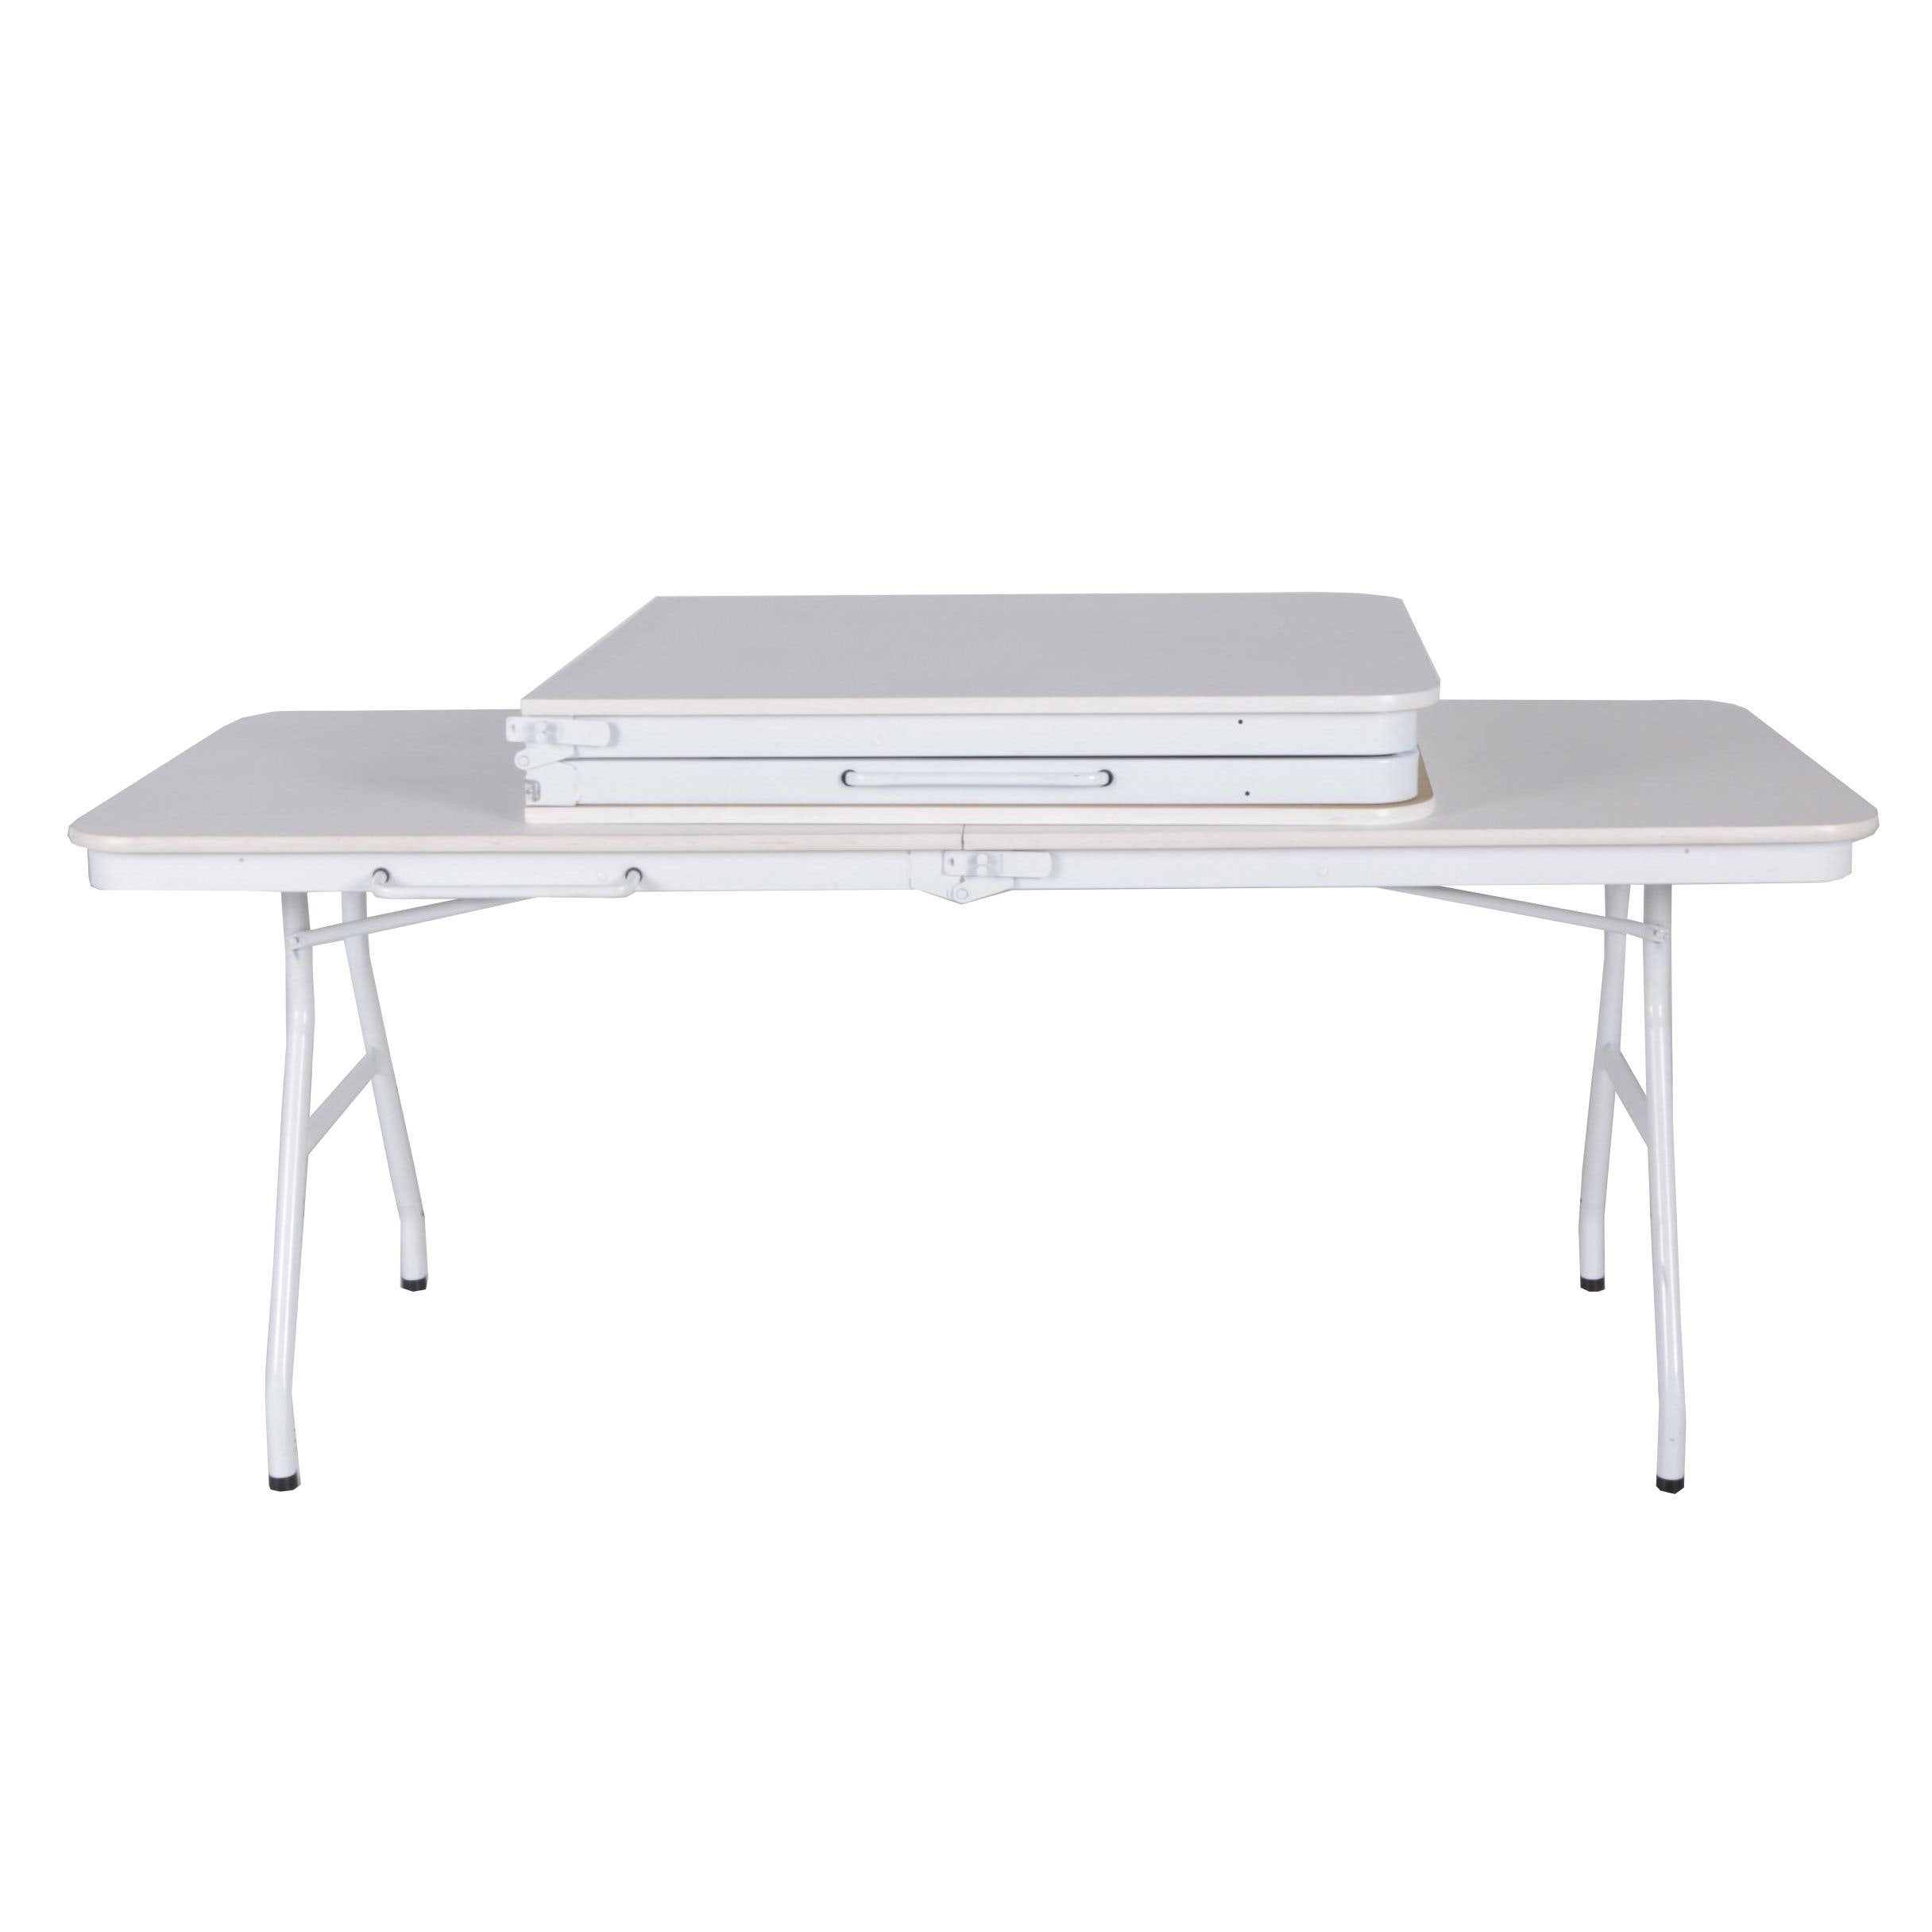 White Laminate Folding Banquet Tables by Meco